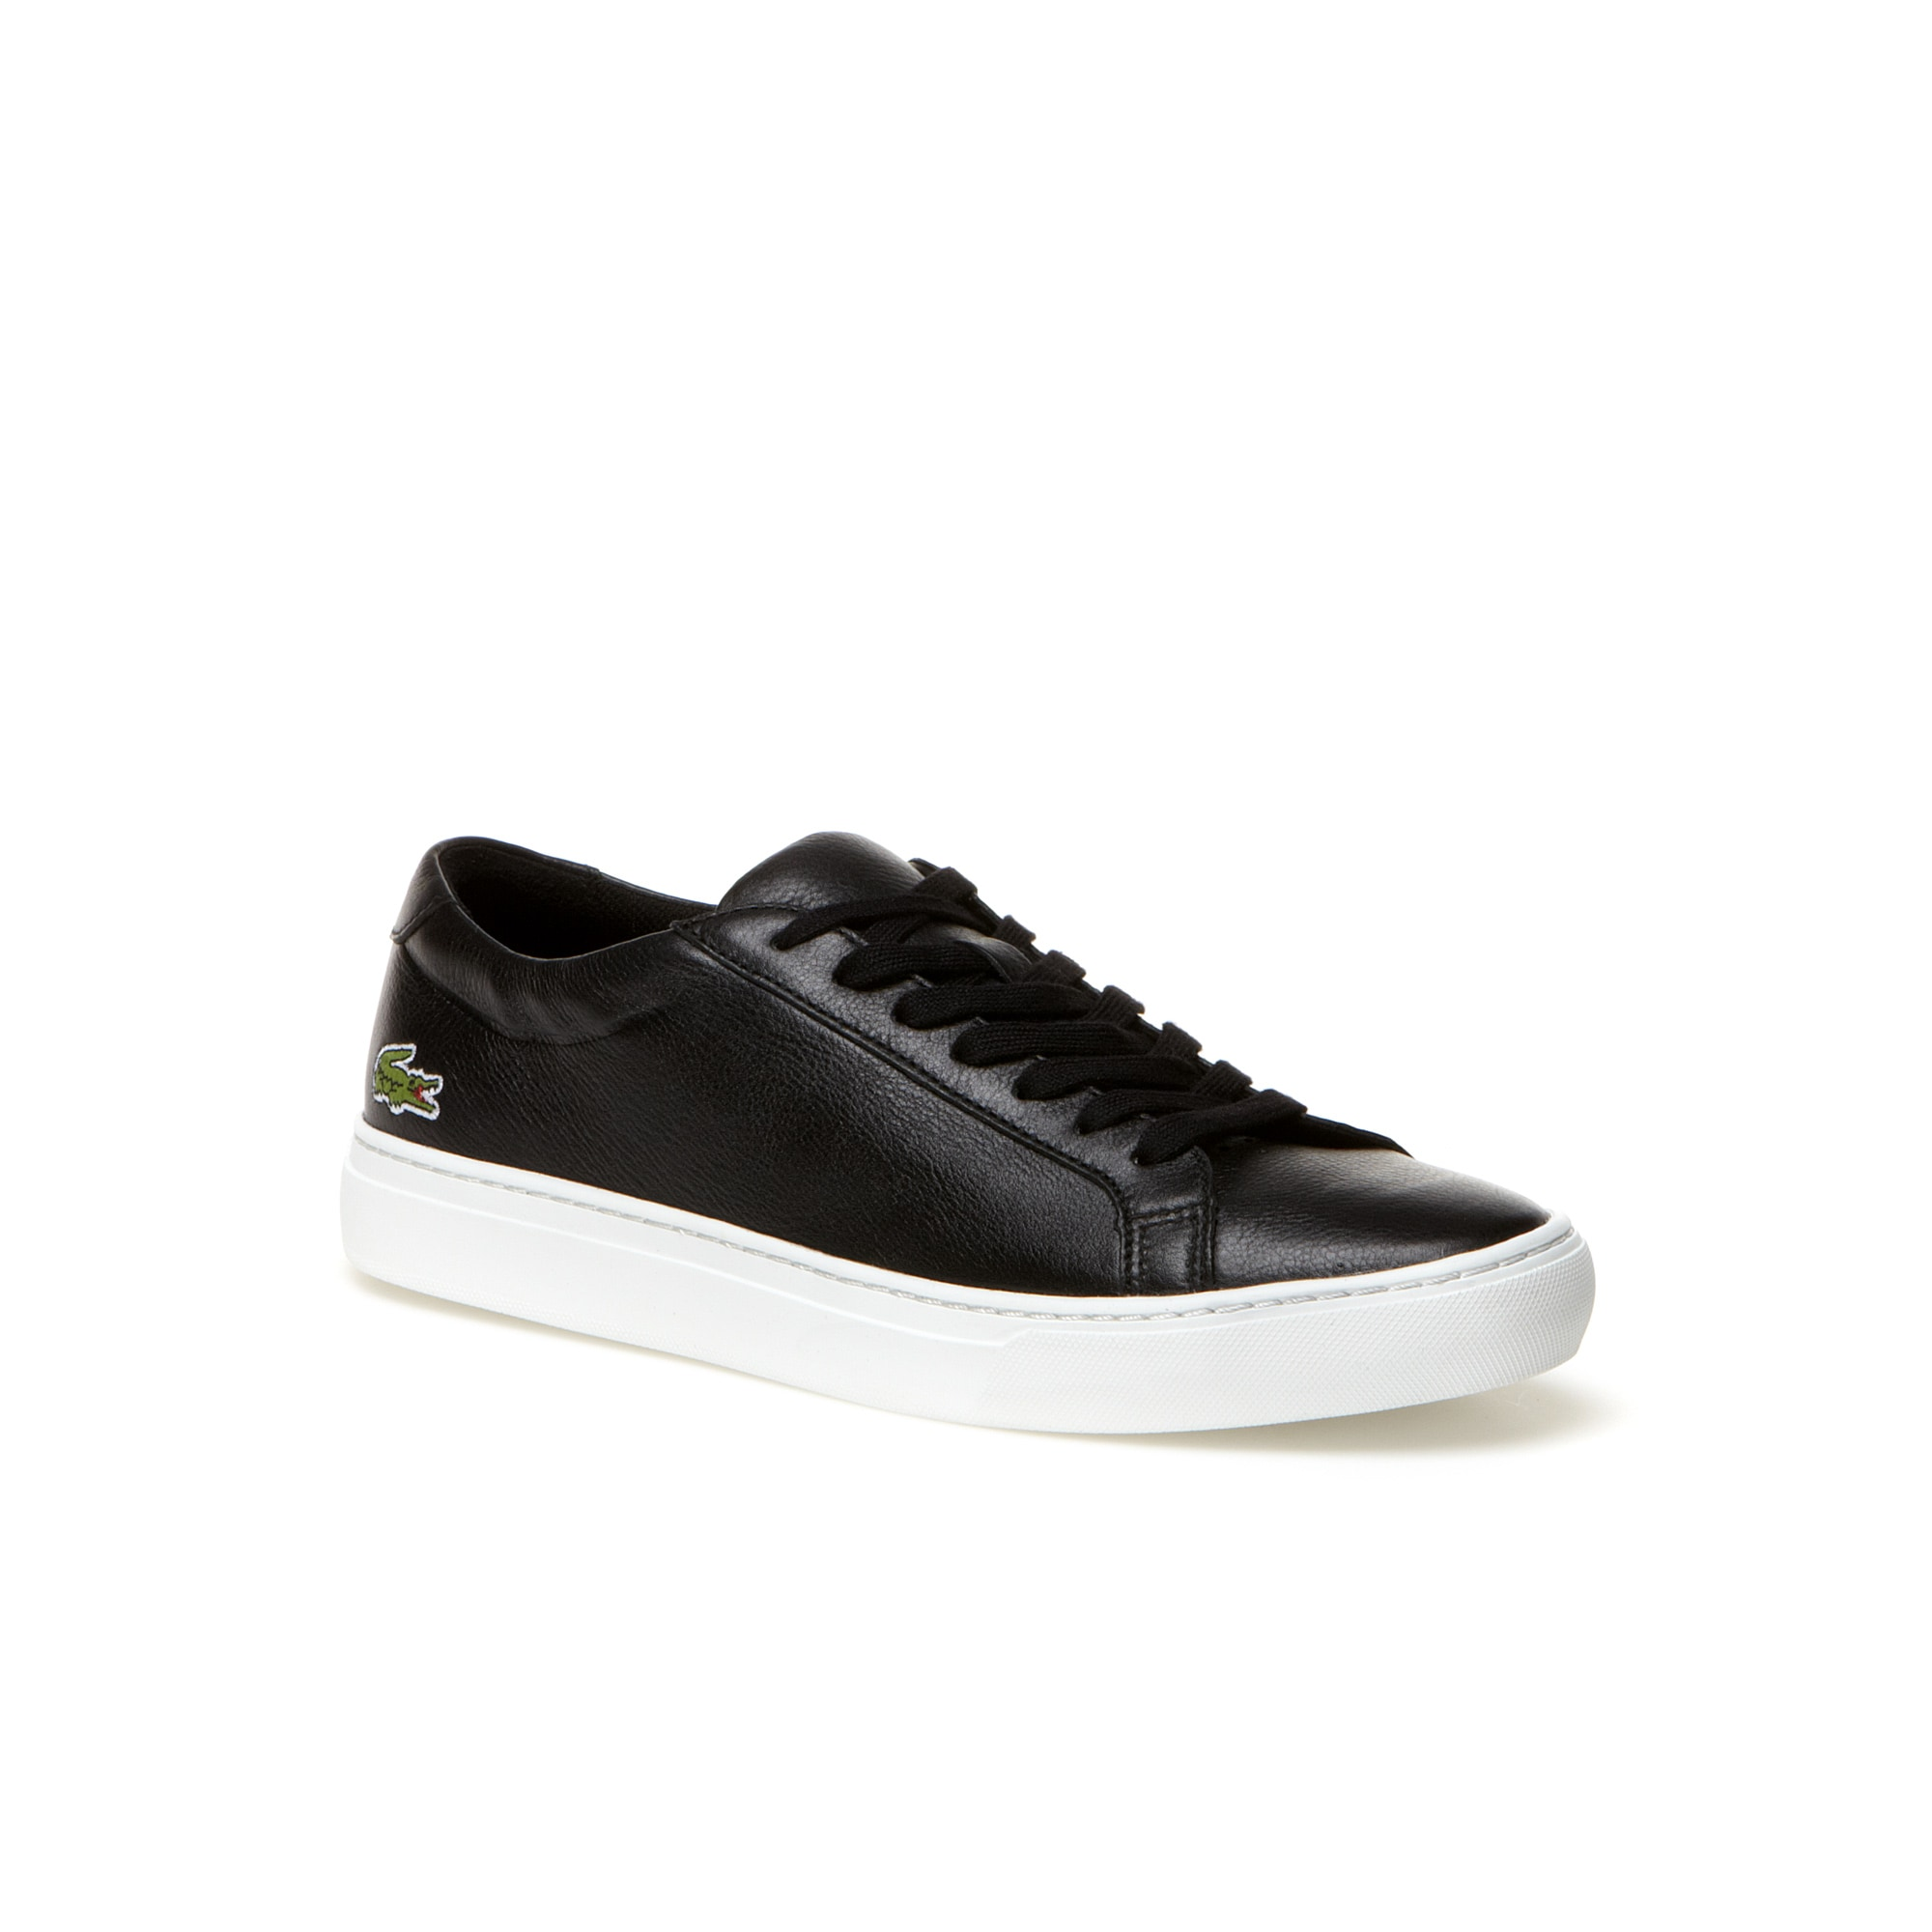 Men's L.12.12 Leather Sneakers